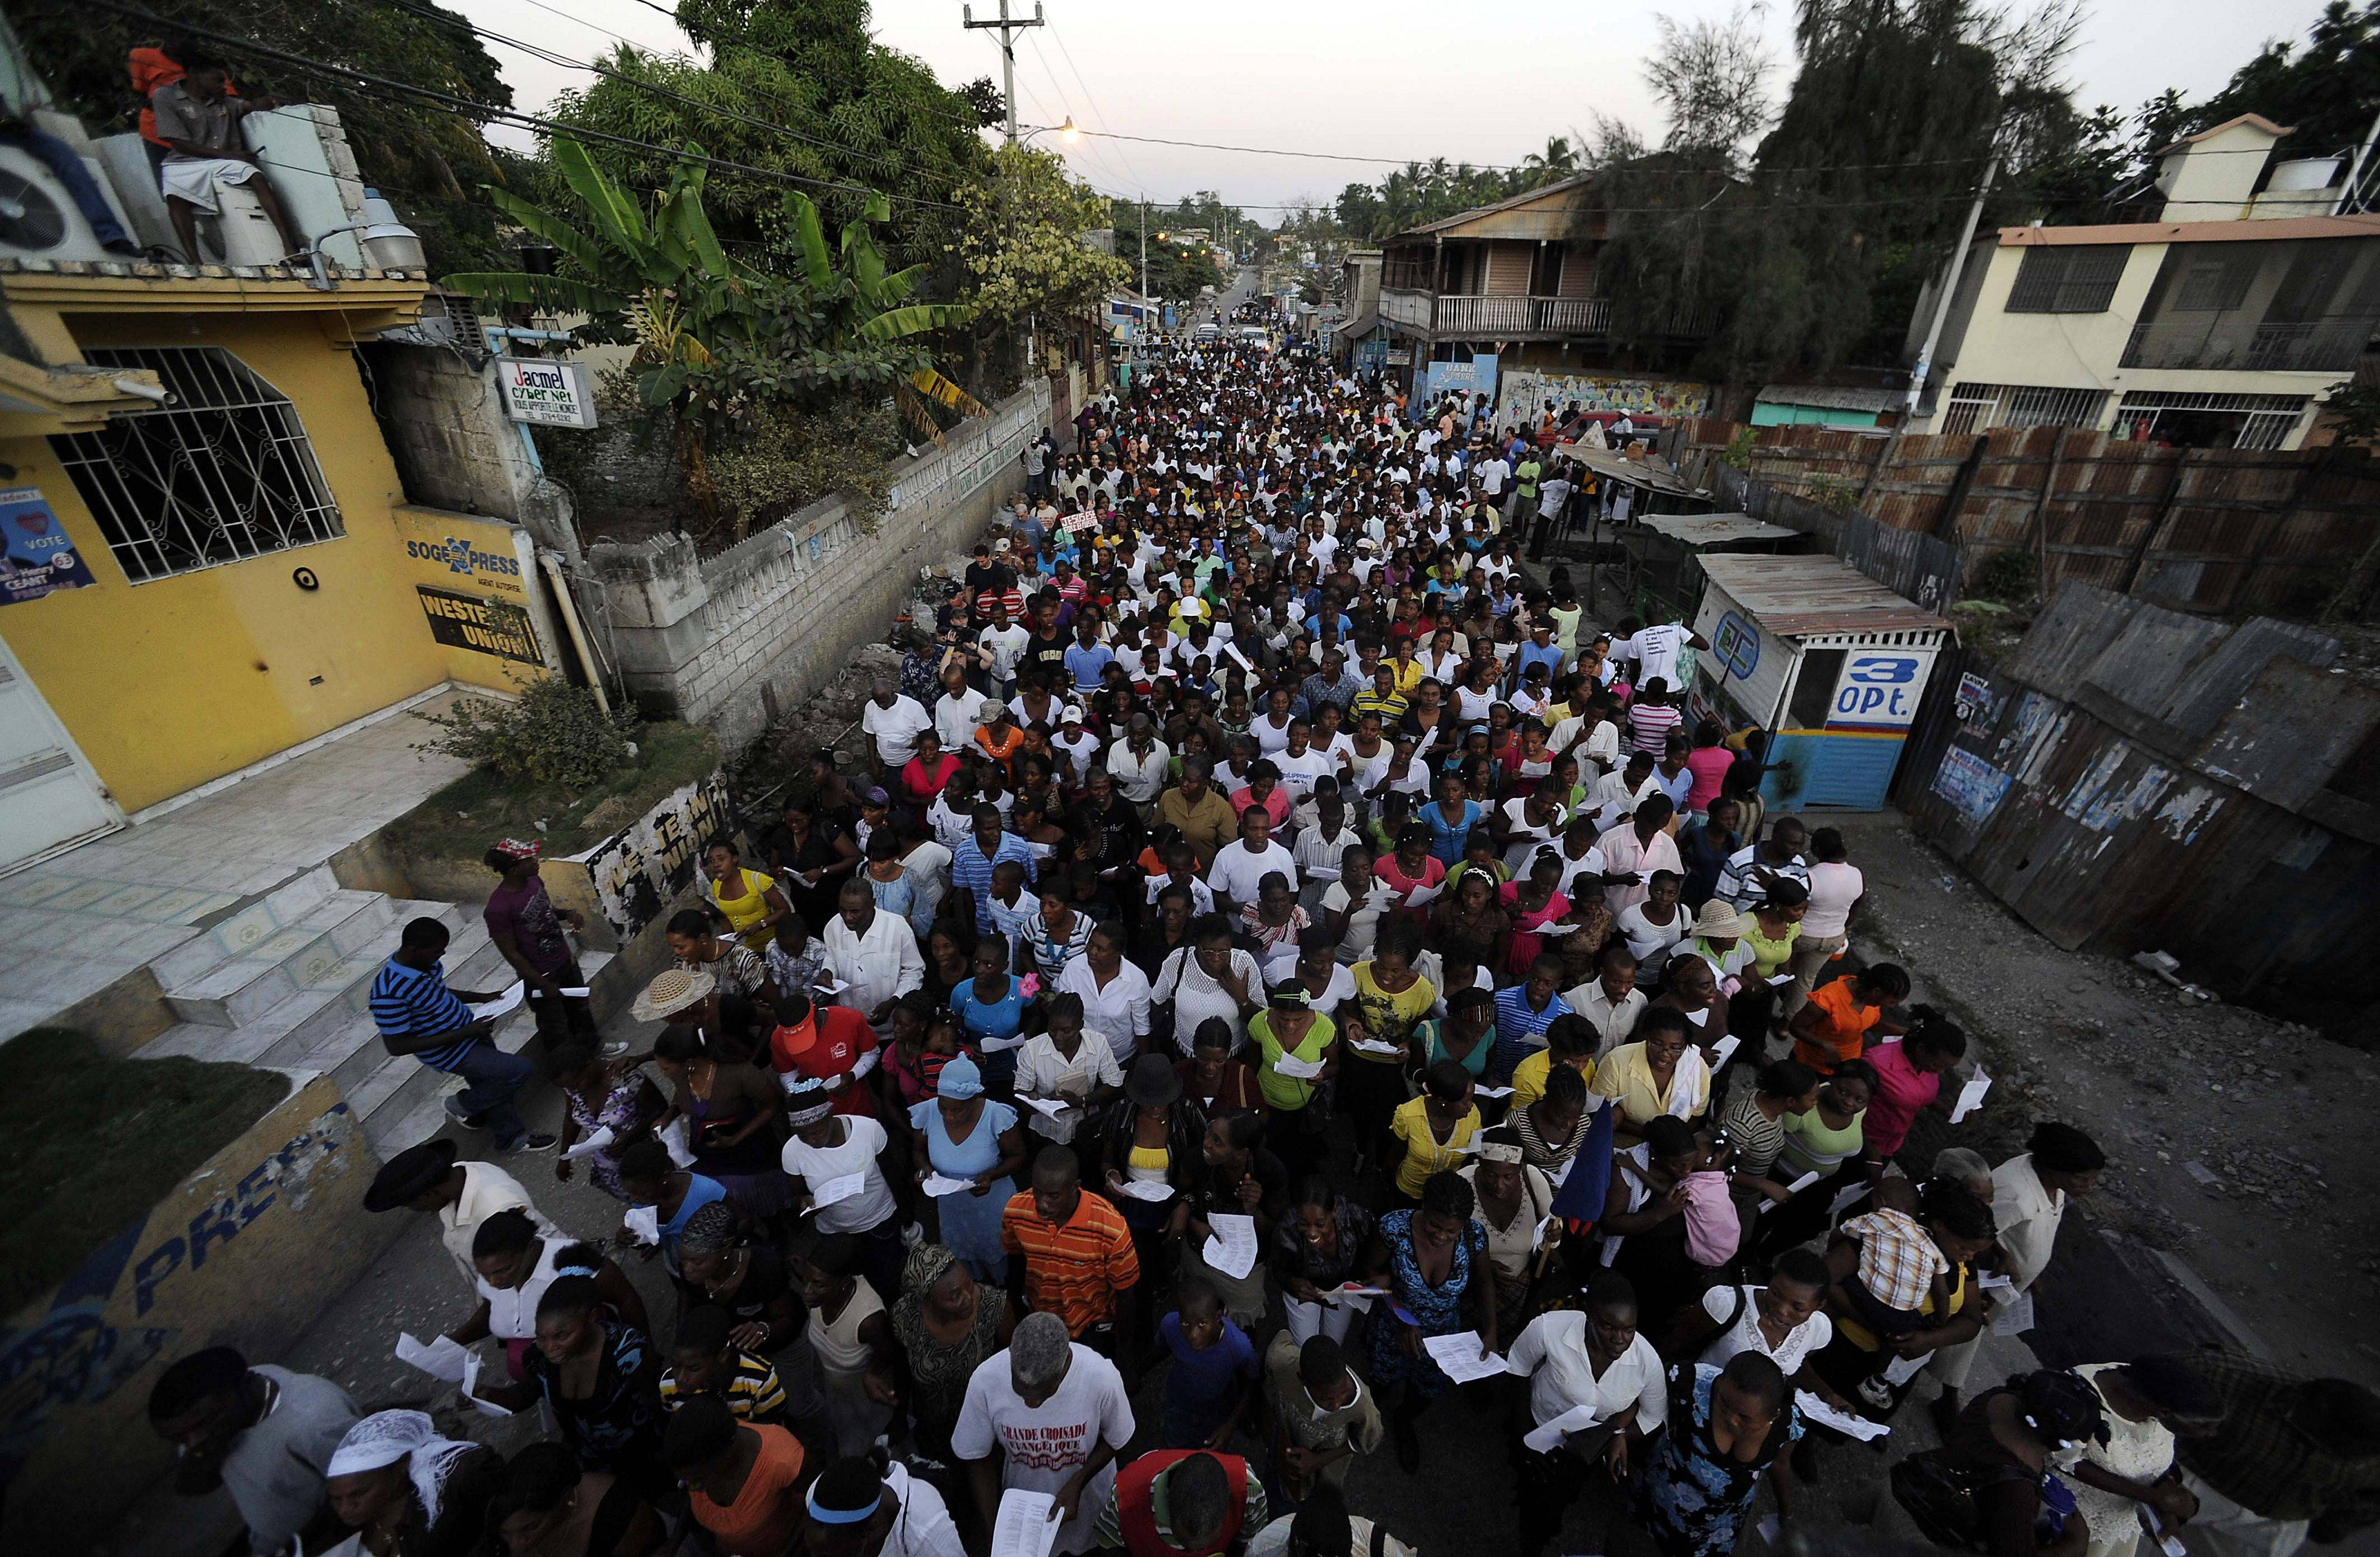 Thousands march through the streets of Jacmel, Haiti singing and praying as they mark the one-year anniversary of the massive earthquake .